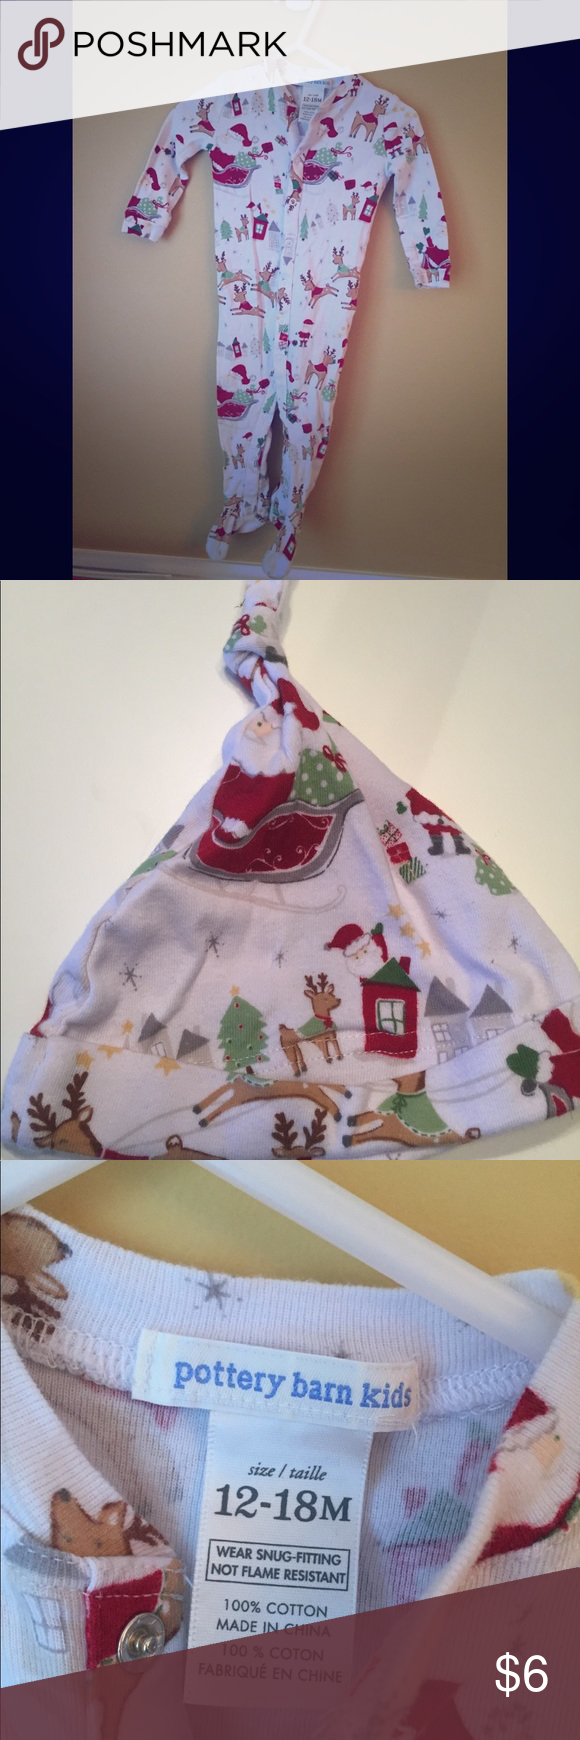 Pottery Barn Kids Christmas sleeper with hat🎄 Pottery